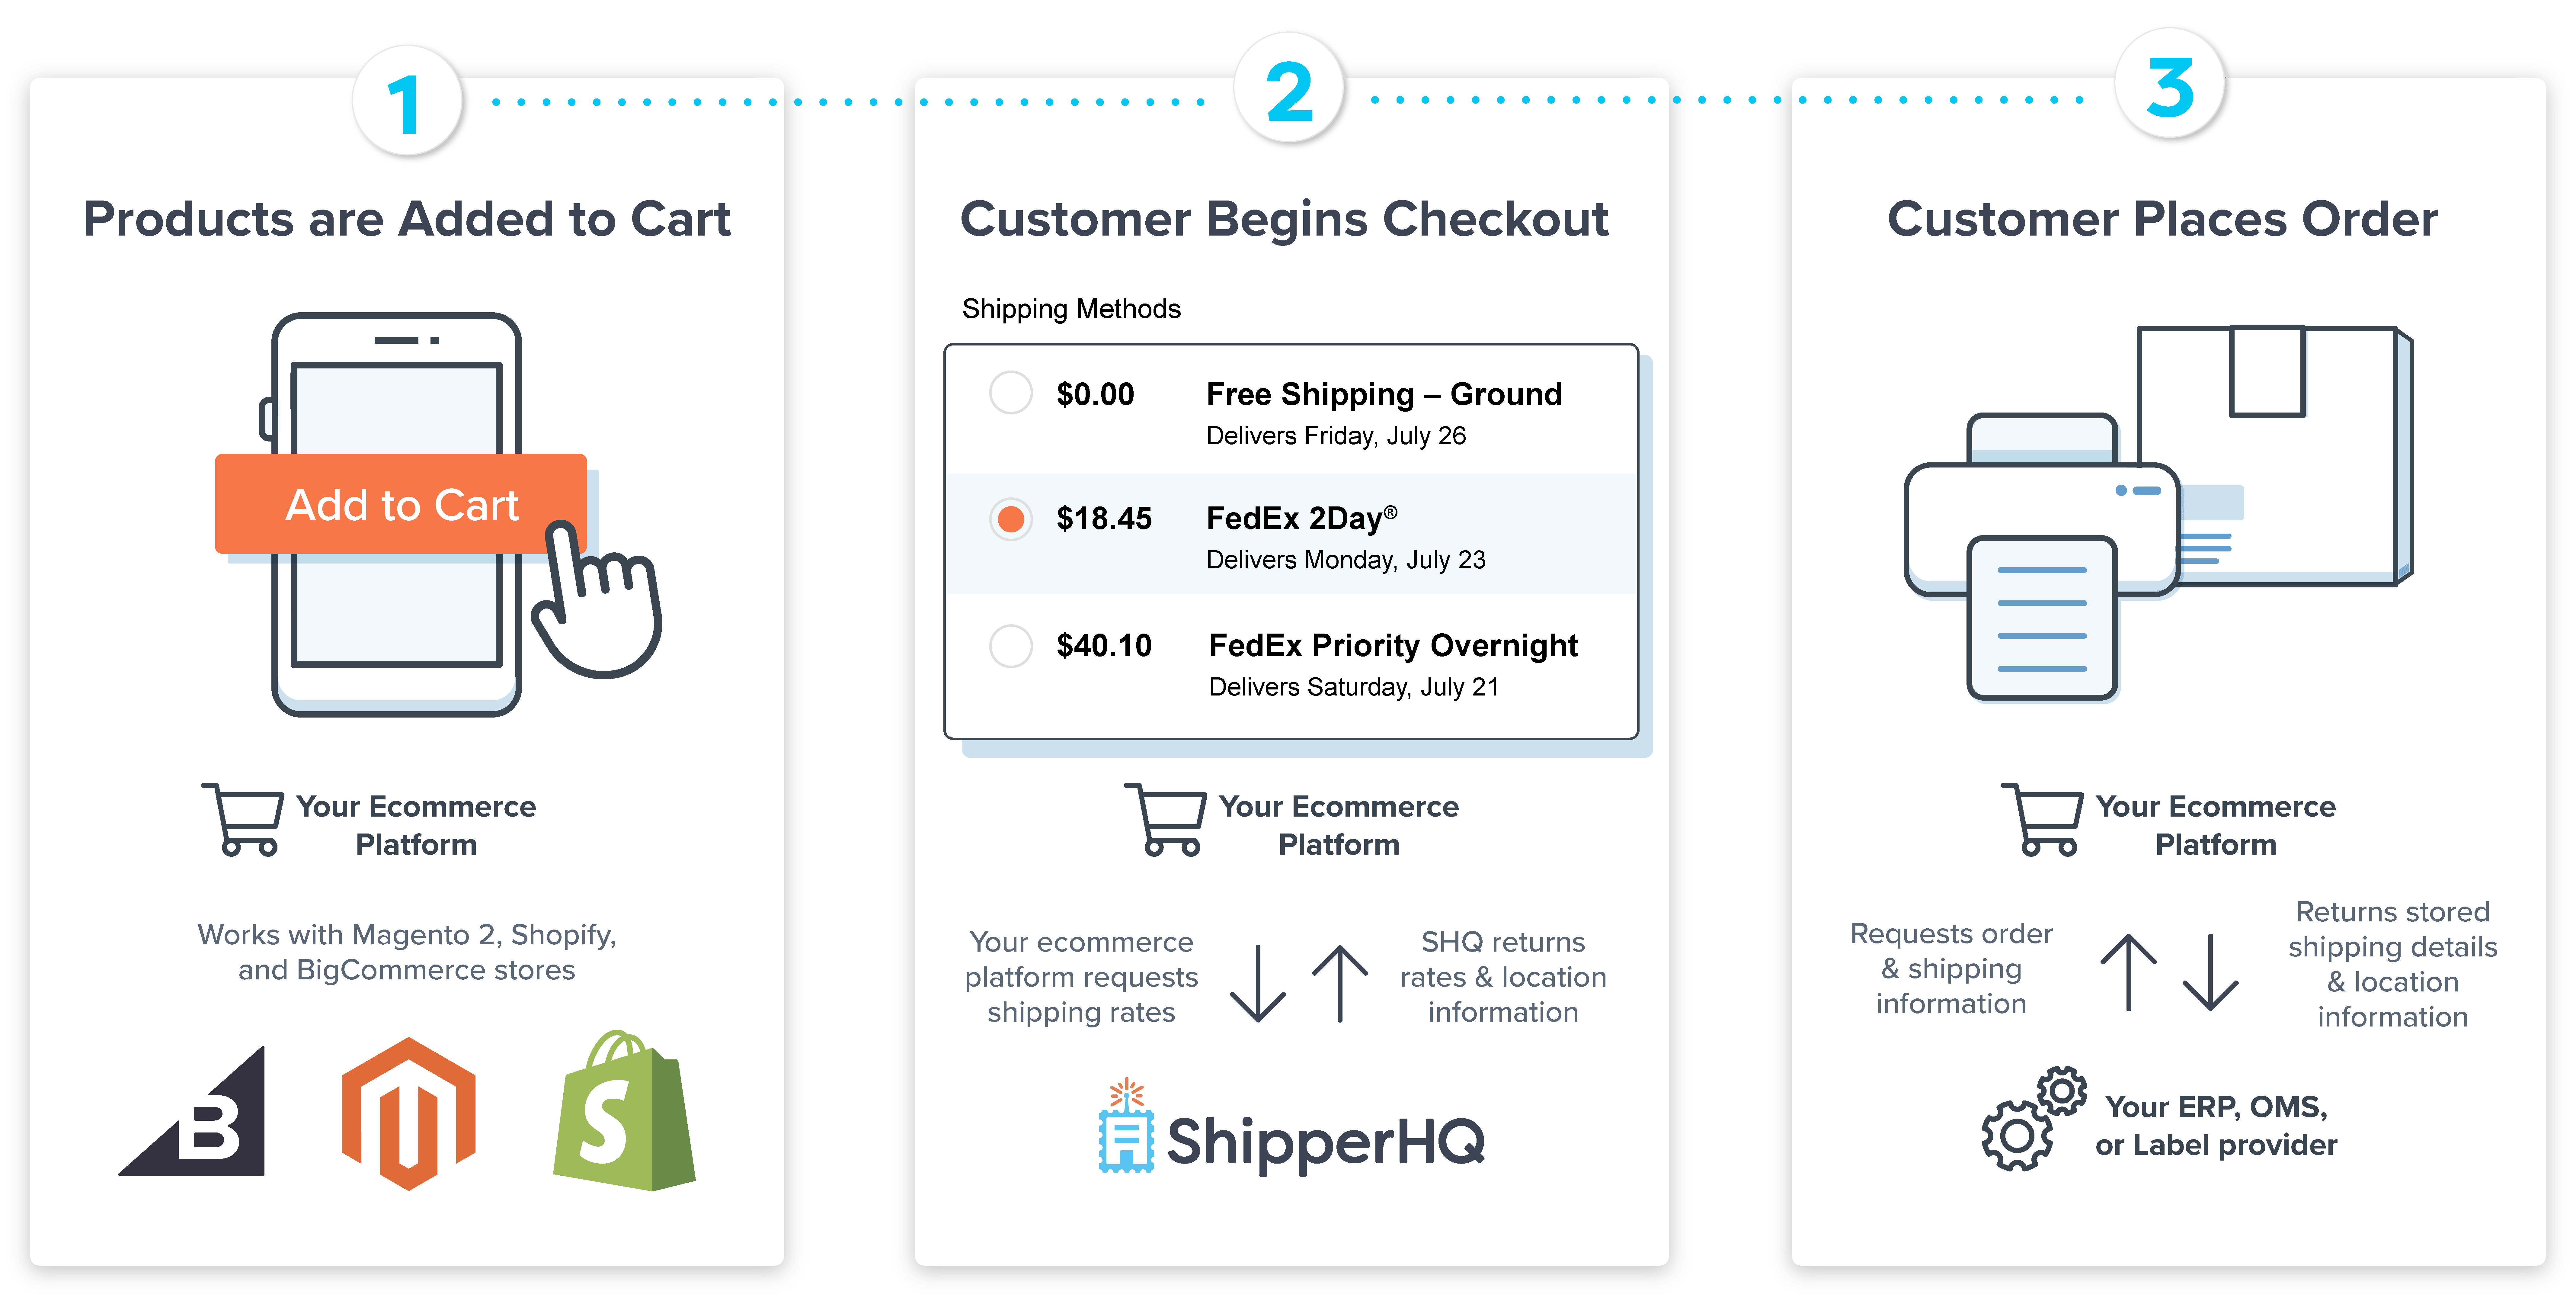 A flowchart of how Shipstation and ShipperHQ work with your ecommerce platform